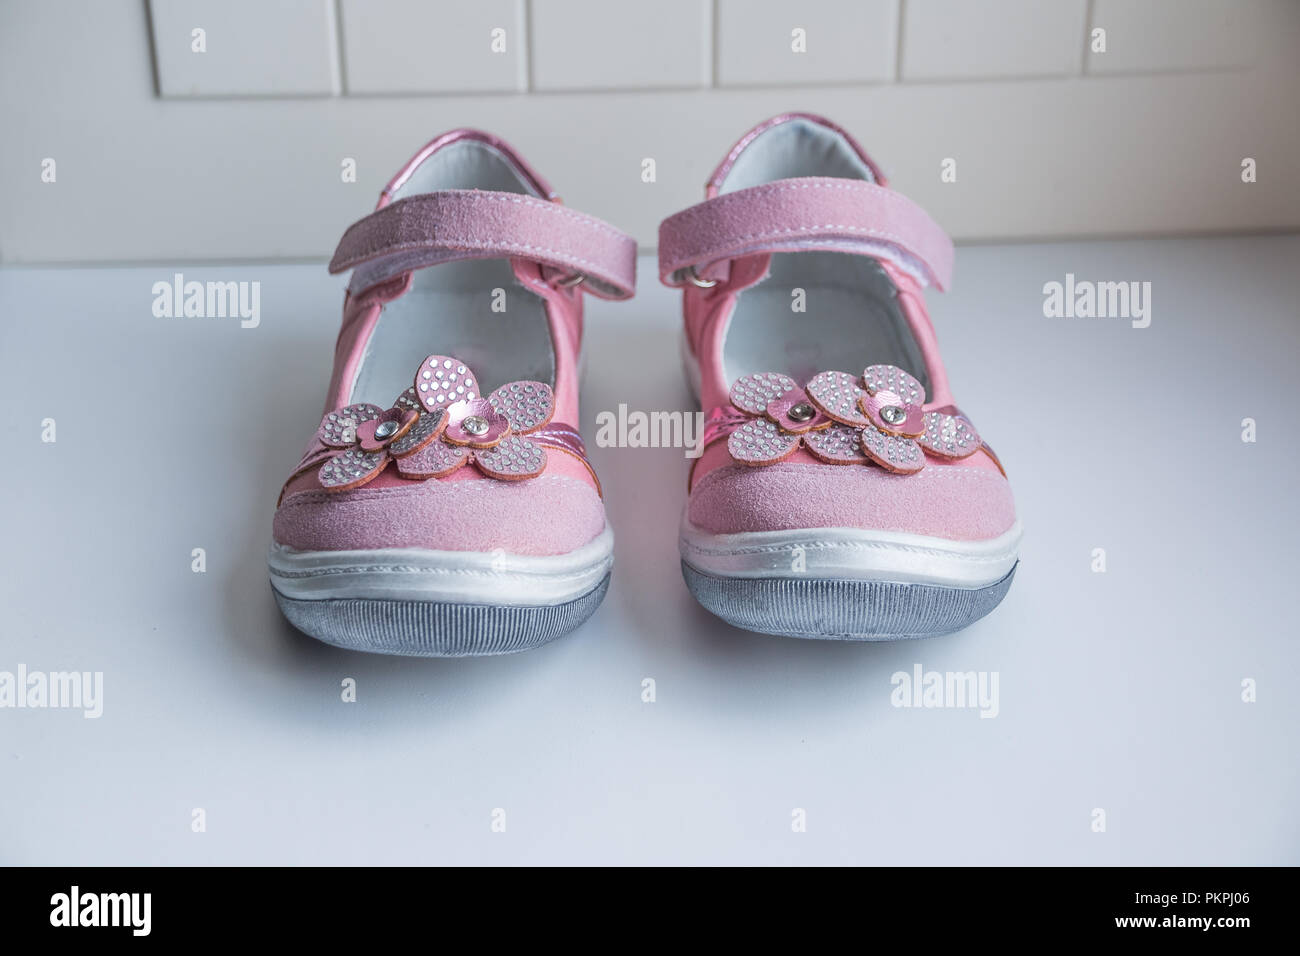 b7be9a98cad75 Pair of cute baby sandals decorated with flowers on white background ...